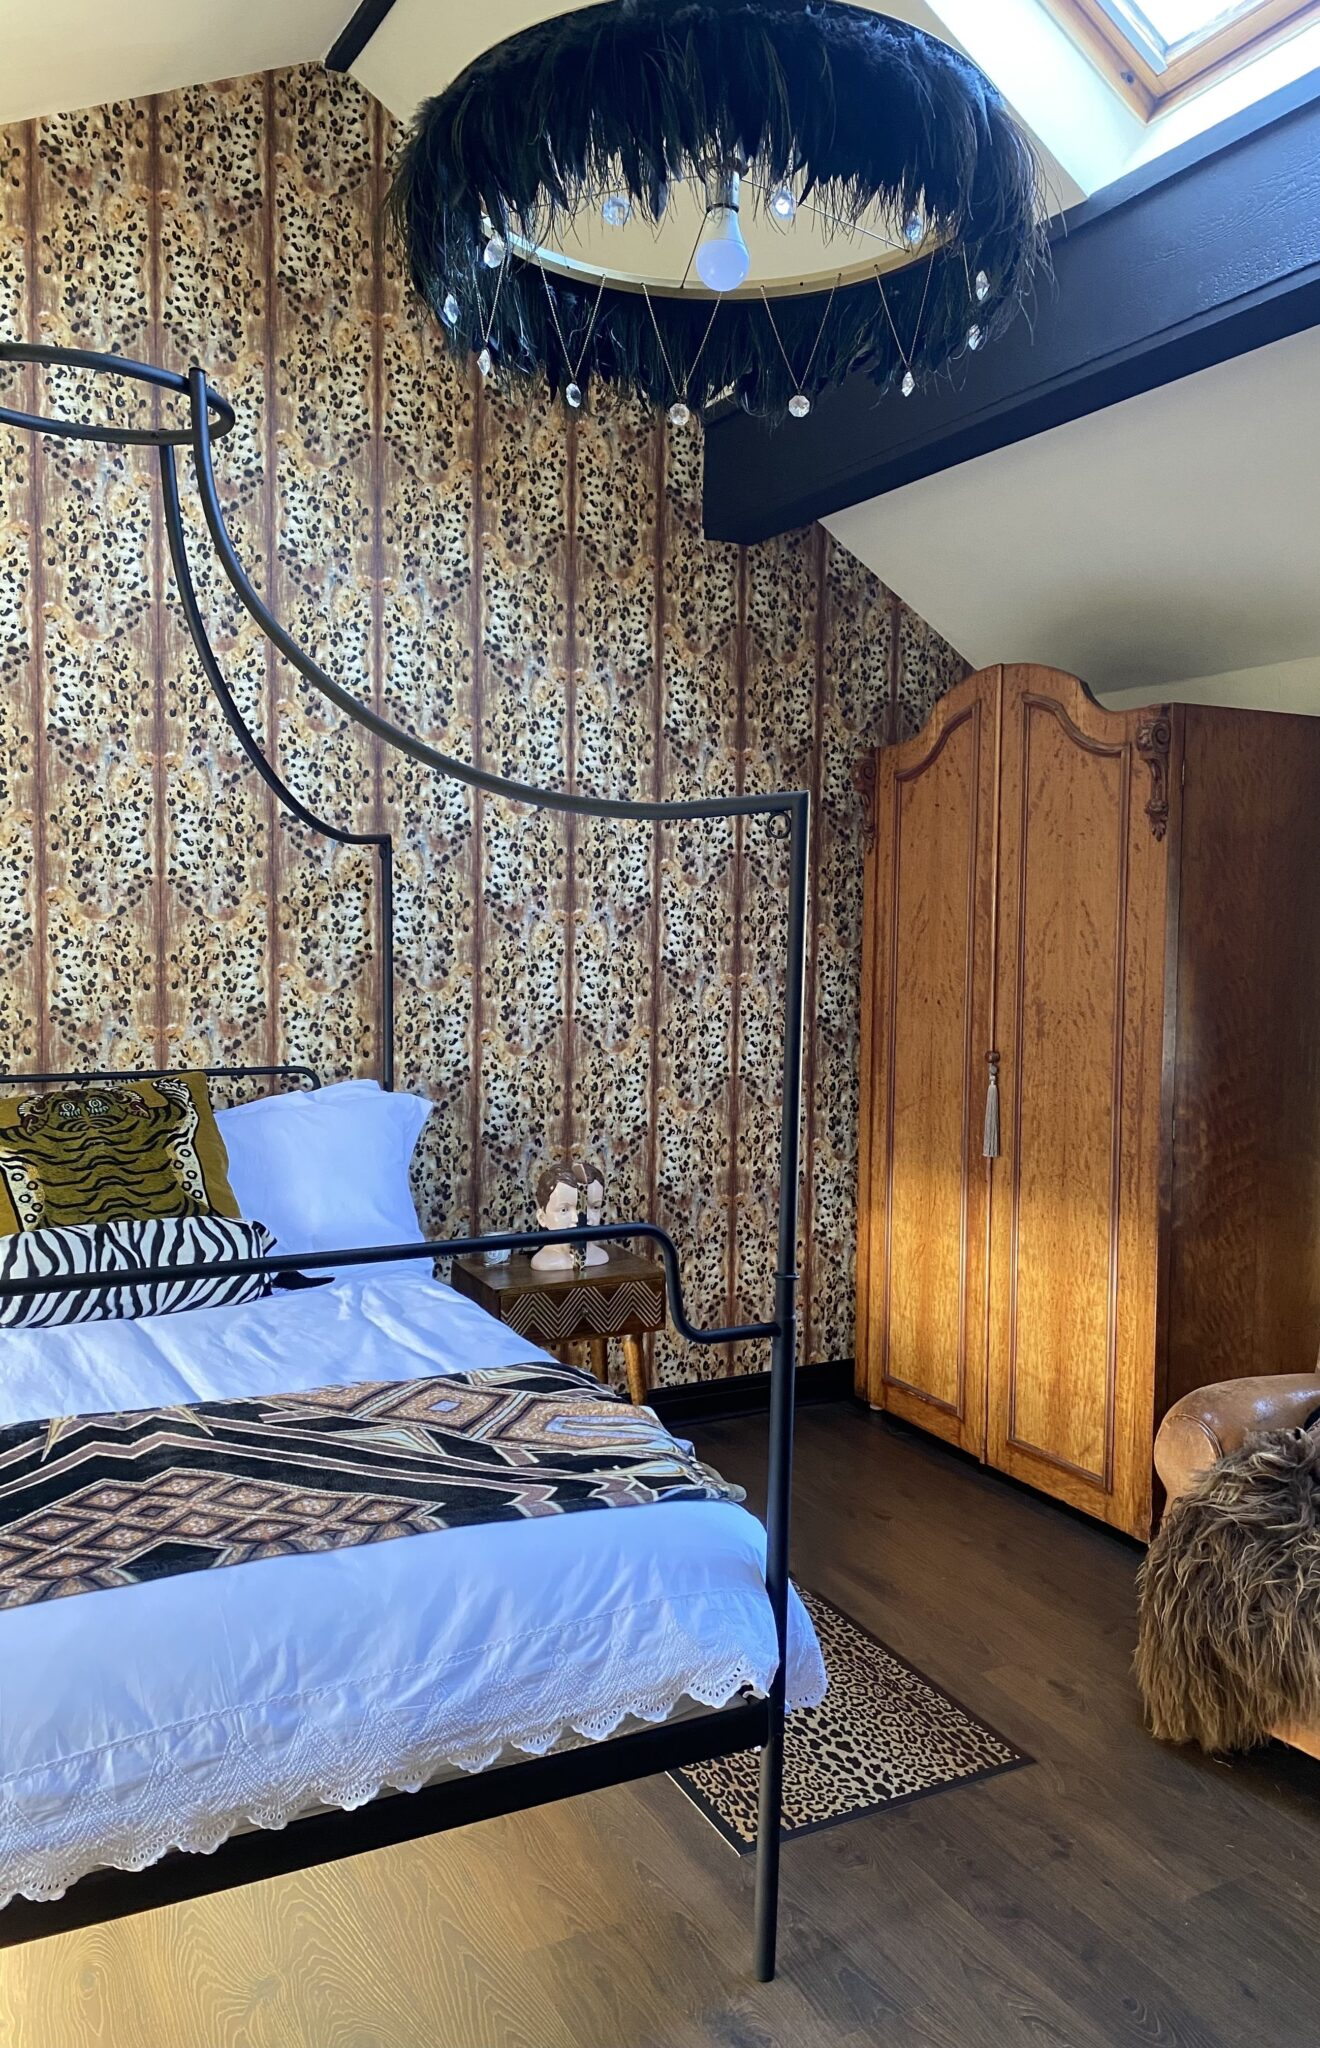 vintage-wardrobe-in-beroom-with-a-four-poster-bed